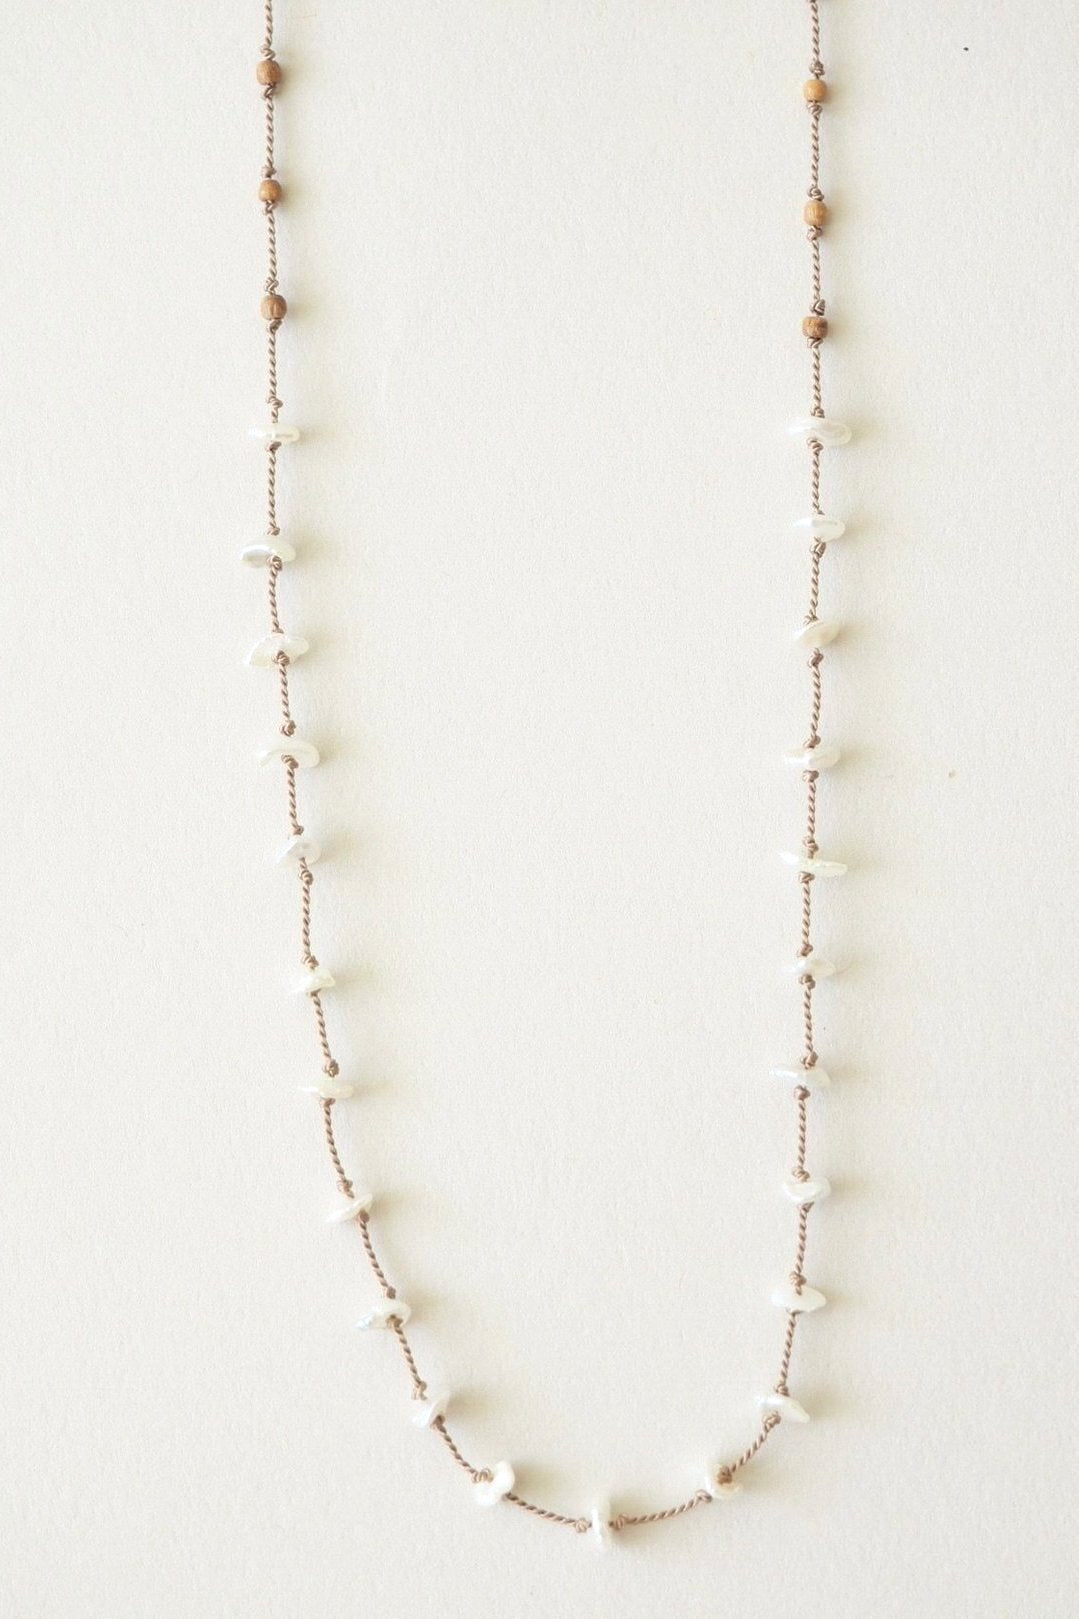 desert sandalwood and mother of pearl necklace